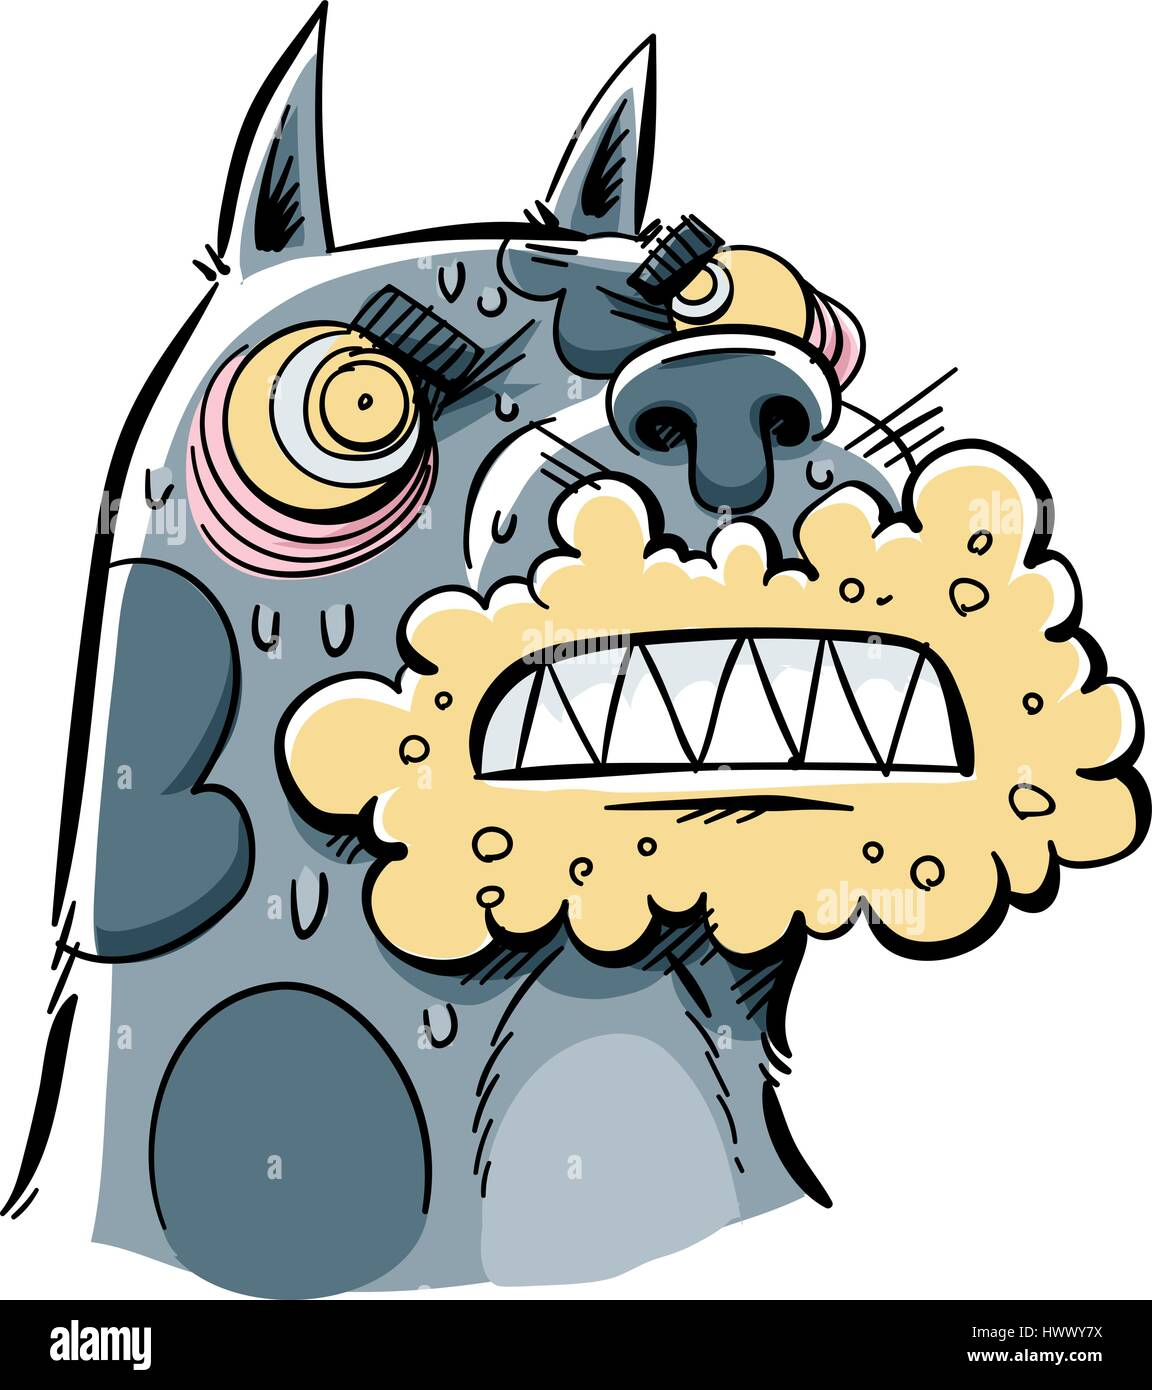 A cartoon of a rabid dog with a foaming, angry mouth. - Stock Vector